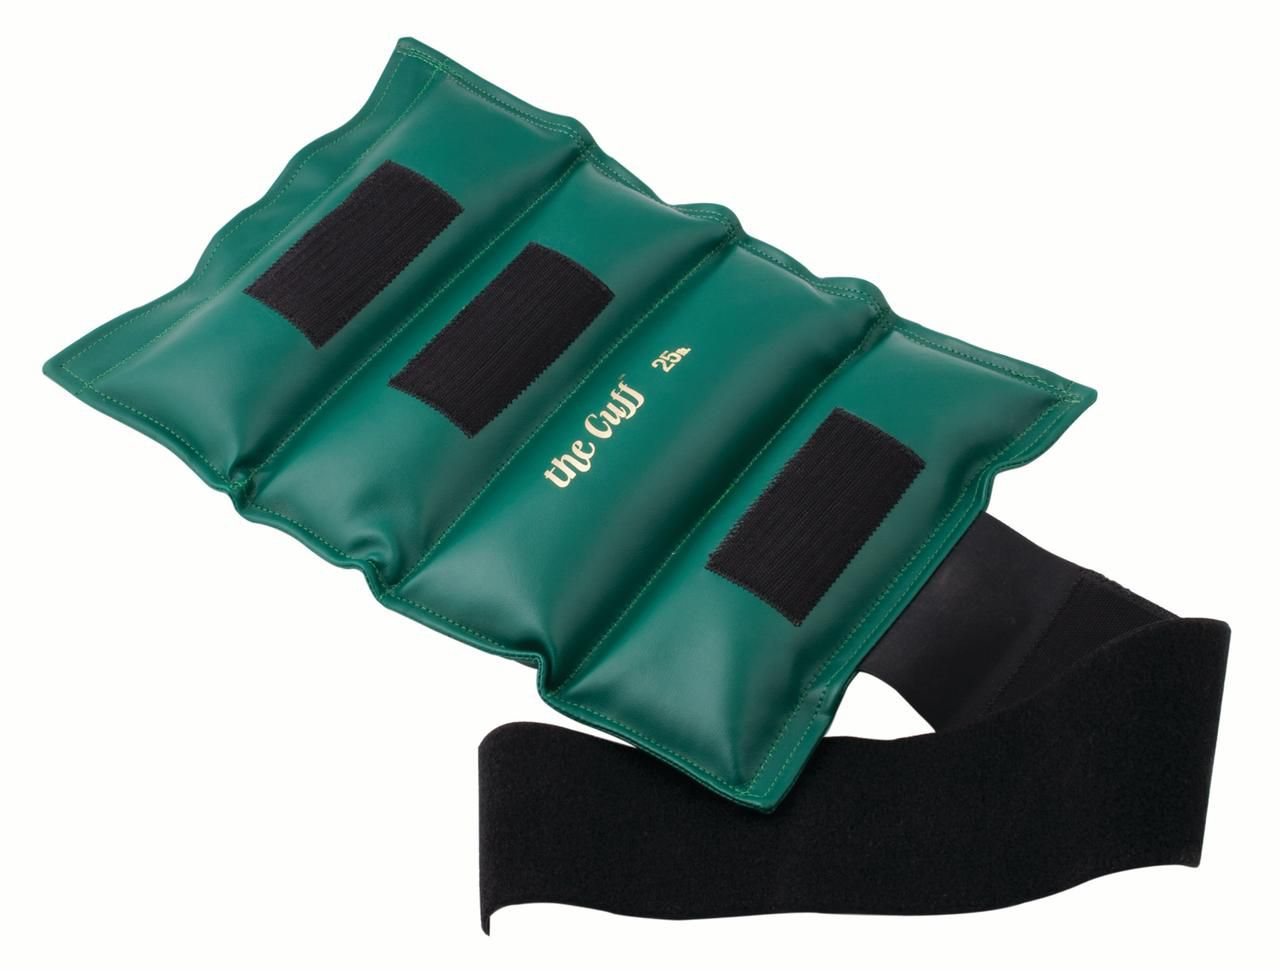 The Cuff Original Adjustable Ankle and Wrist Weight